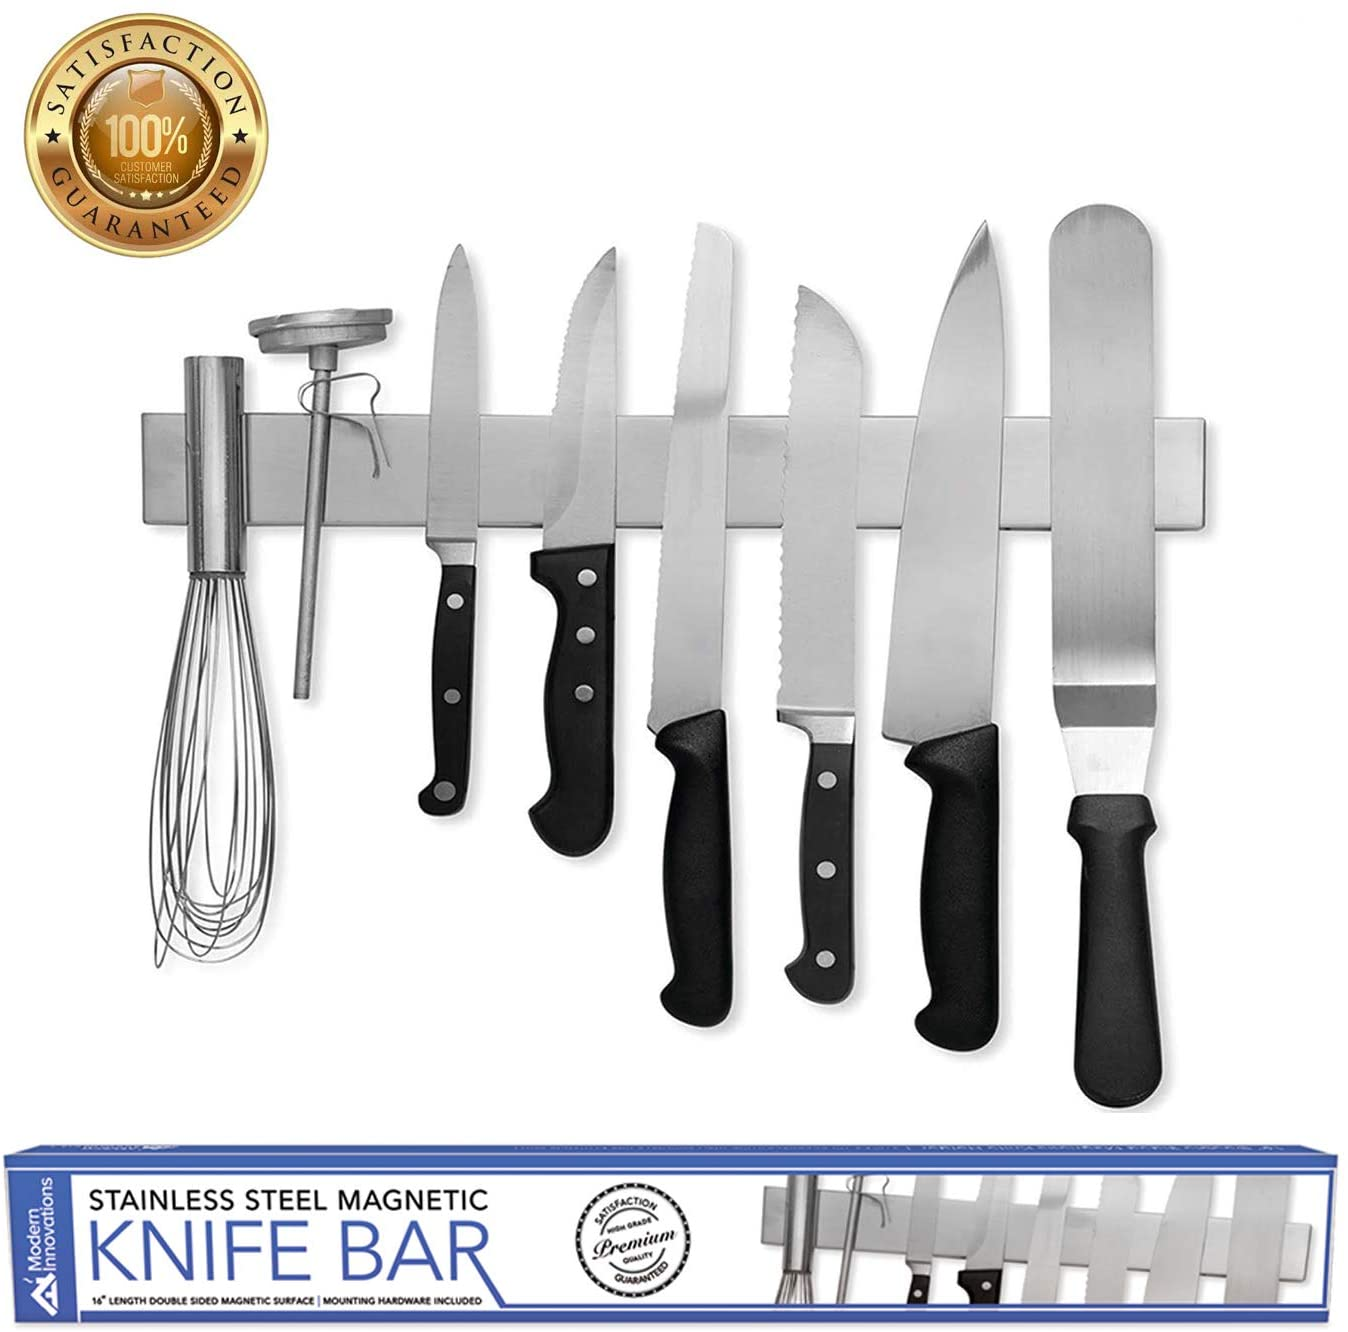 Modern Innovations 16 Inch Stainless Steel Double Sided Magnetic Knife Bar With Multipurpose Use As Wall Mount Knife Holder Knife Rack Kitchen Utensil Holder Magnetic Tool Holder Walmart Com Walmart Com